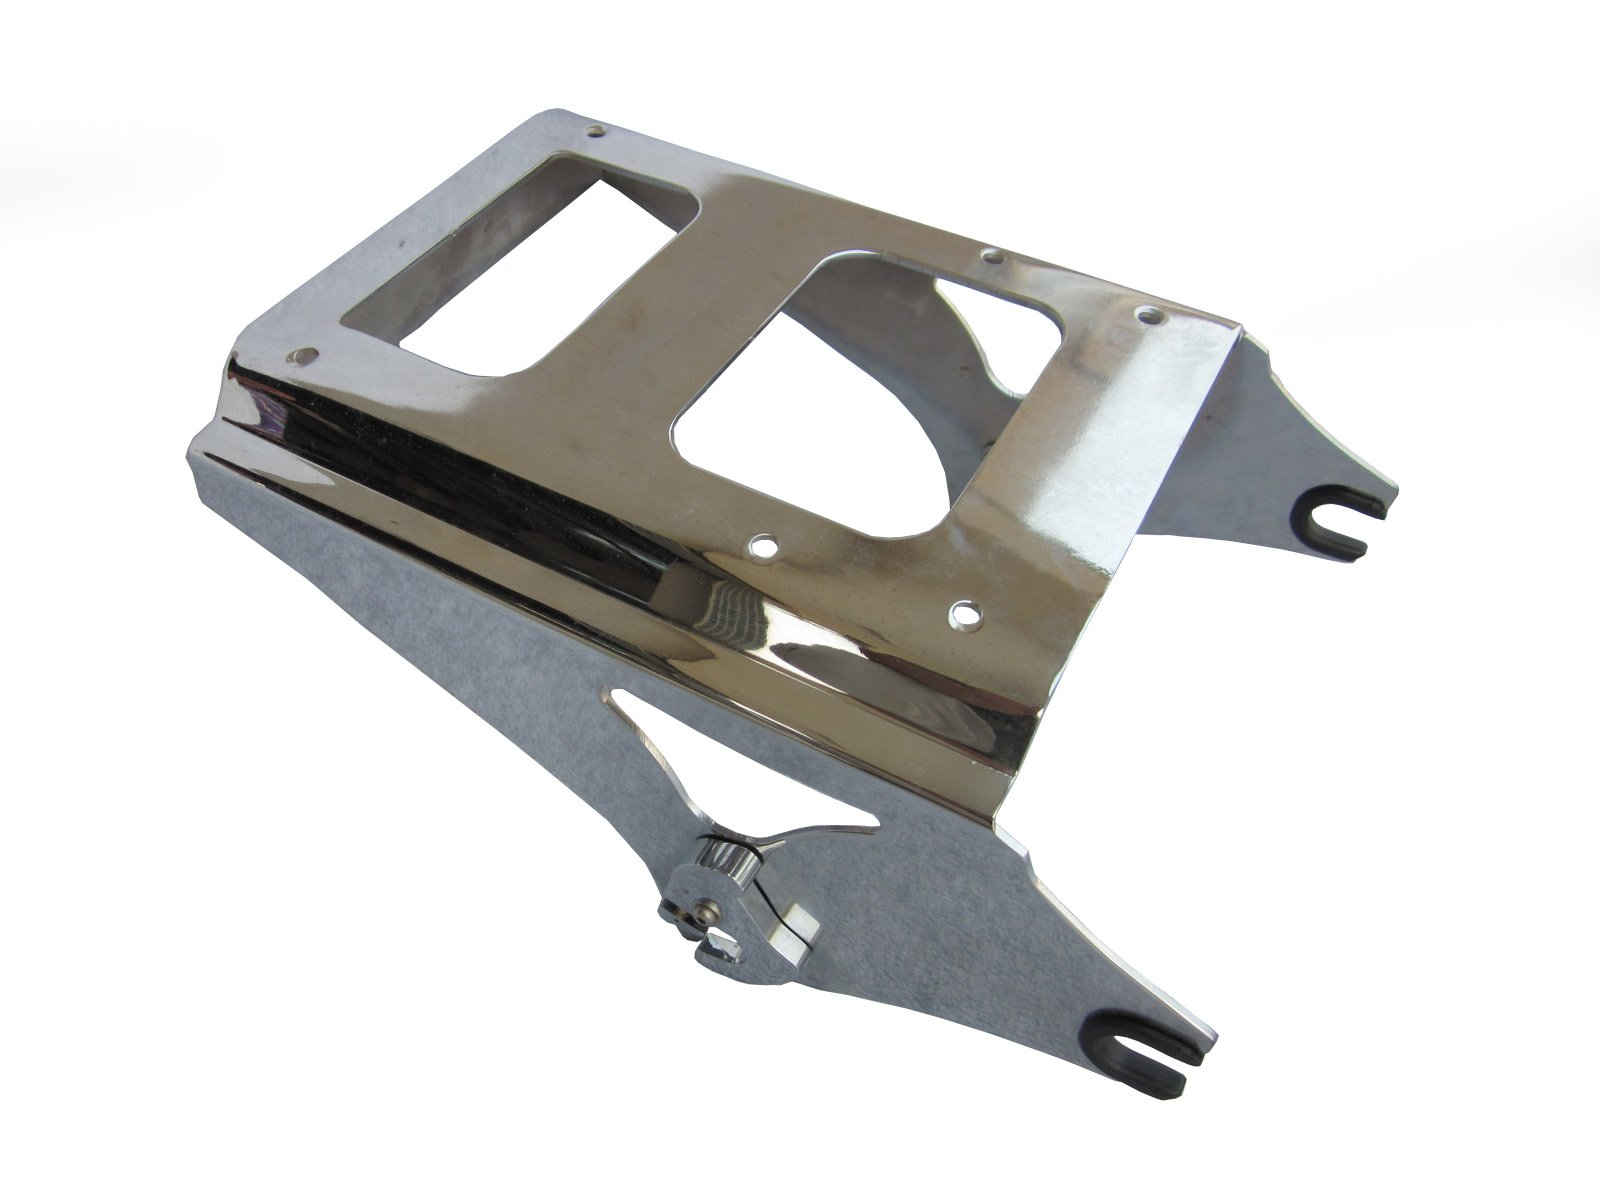 Detachable Two-Up Style Tour Pack Mounting Rack for 2009-2013 Harley Davidson Touring - Chrome